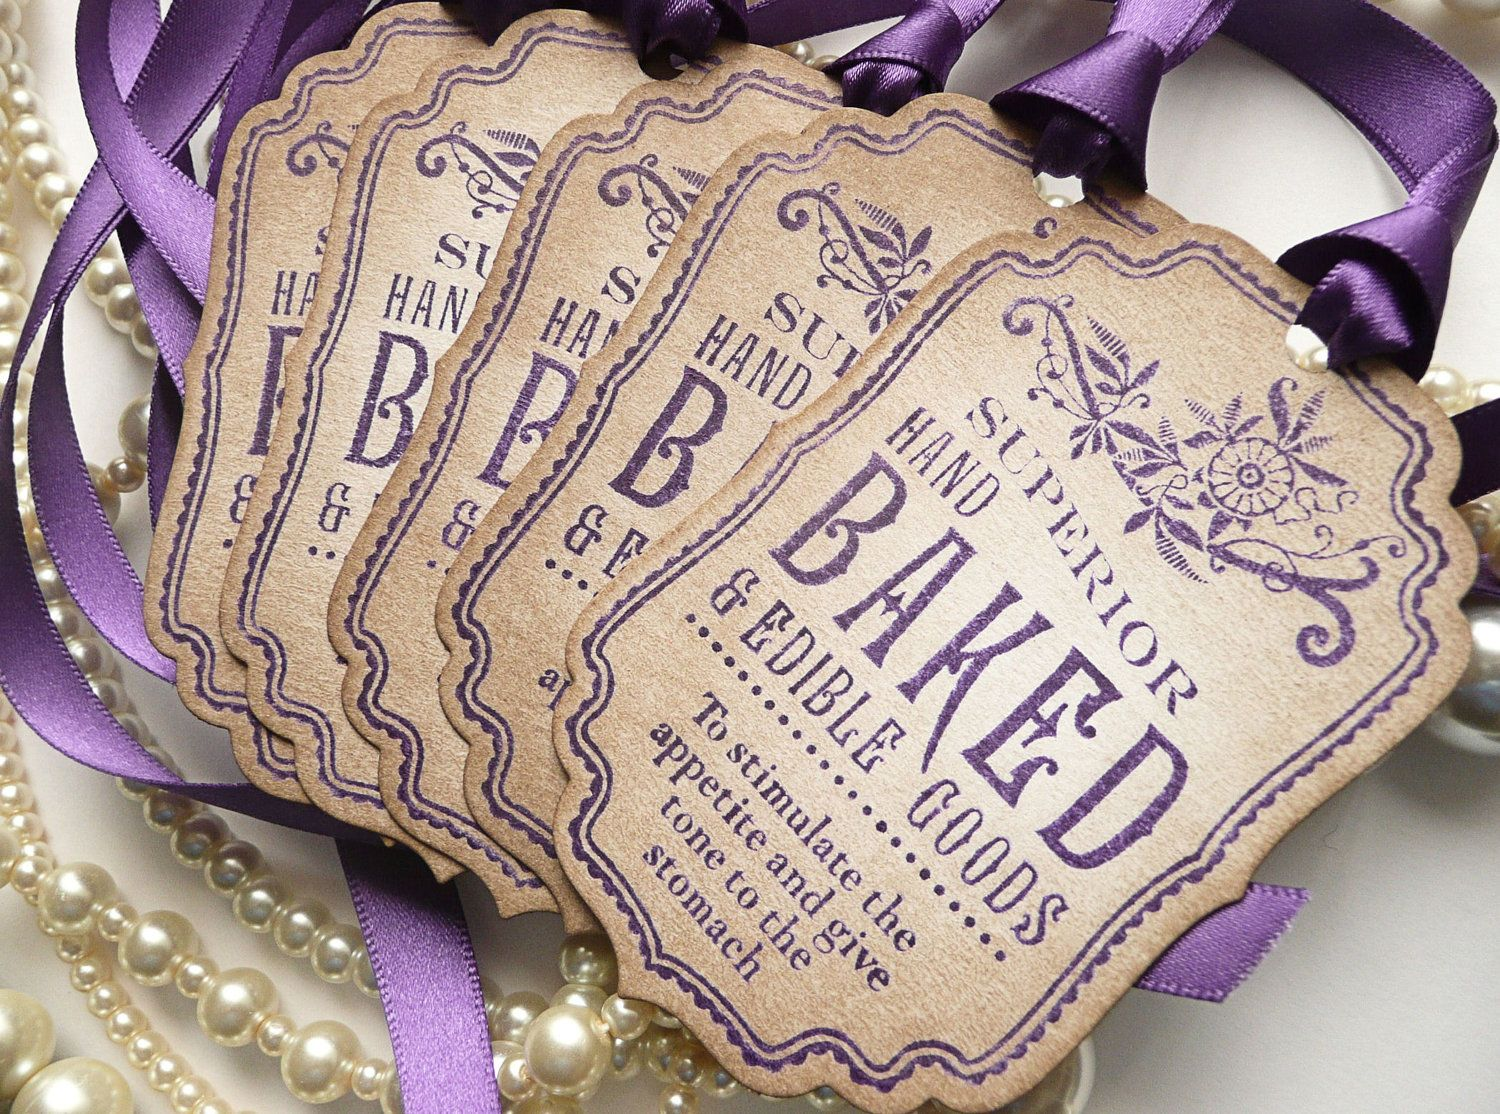 printable wedding place cards vintage%0A Baked Goods Decoration Tags  Purple Vintage Style  Ideal Wedding Favor  Tags  Cookies